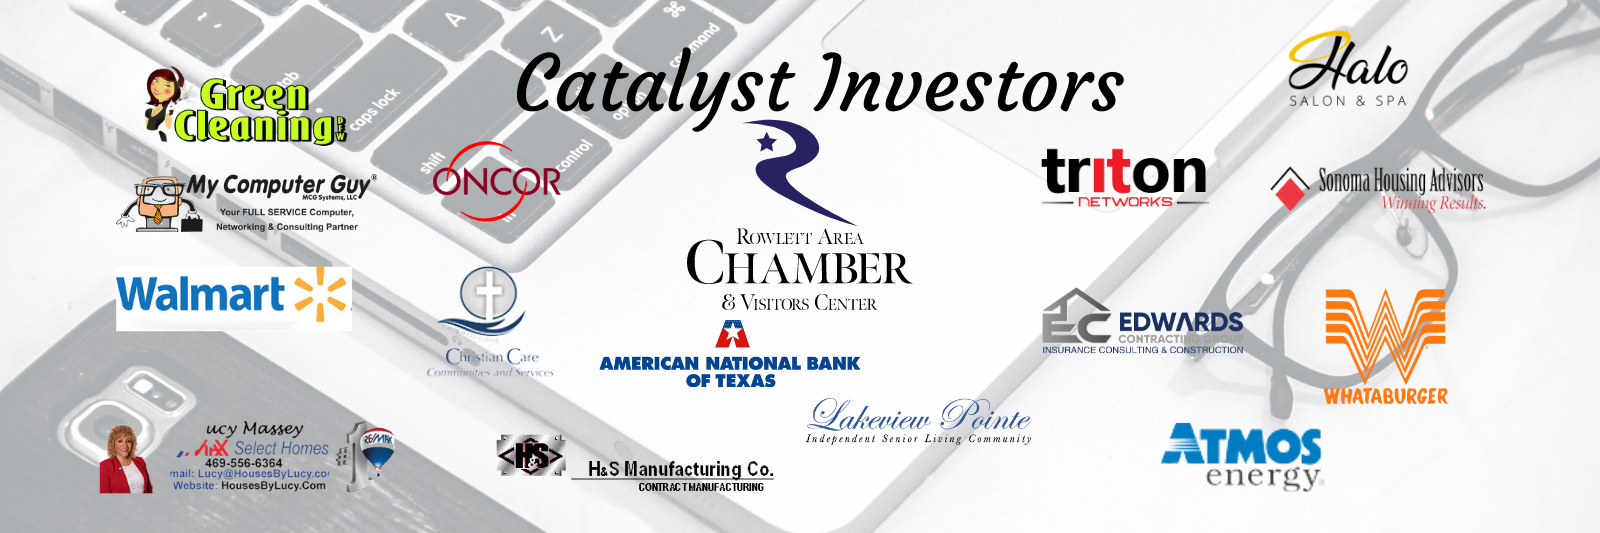 Catalyst-Investor-3.29.2021.png